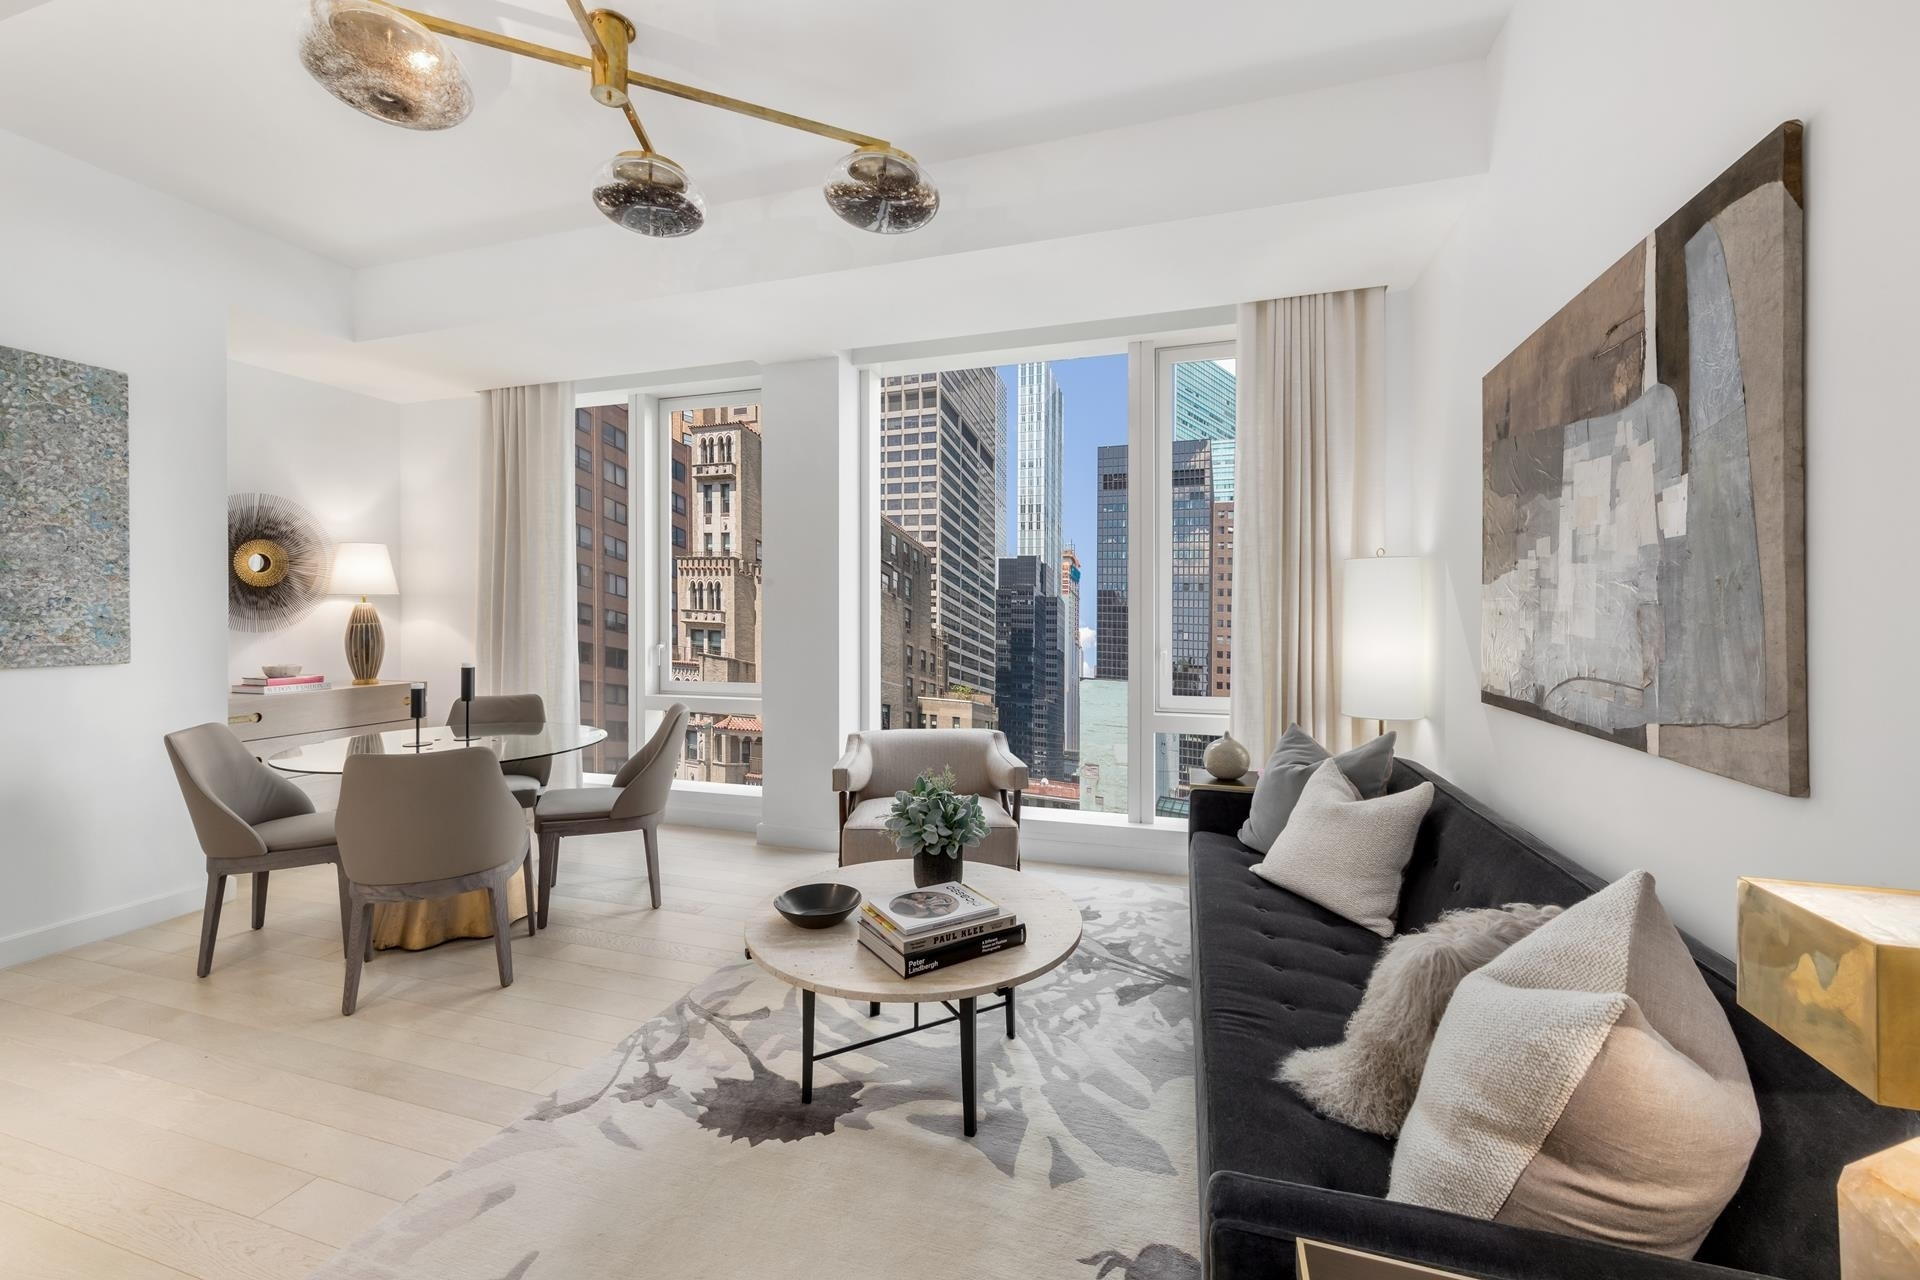 Property à The Centrale Condo, 138 E 50TH ST , 28B Midtown Manhattan, New York, NY 10022